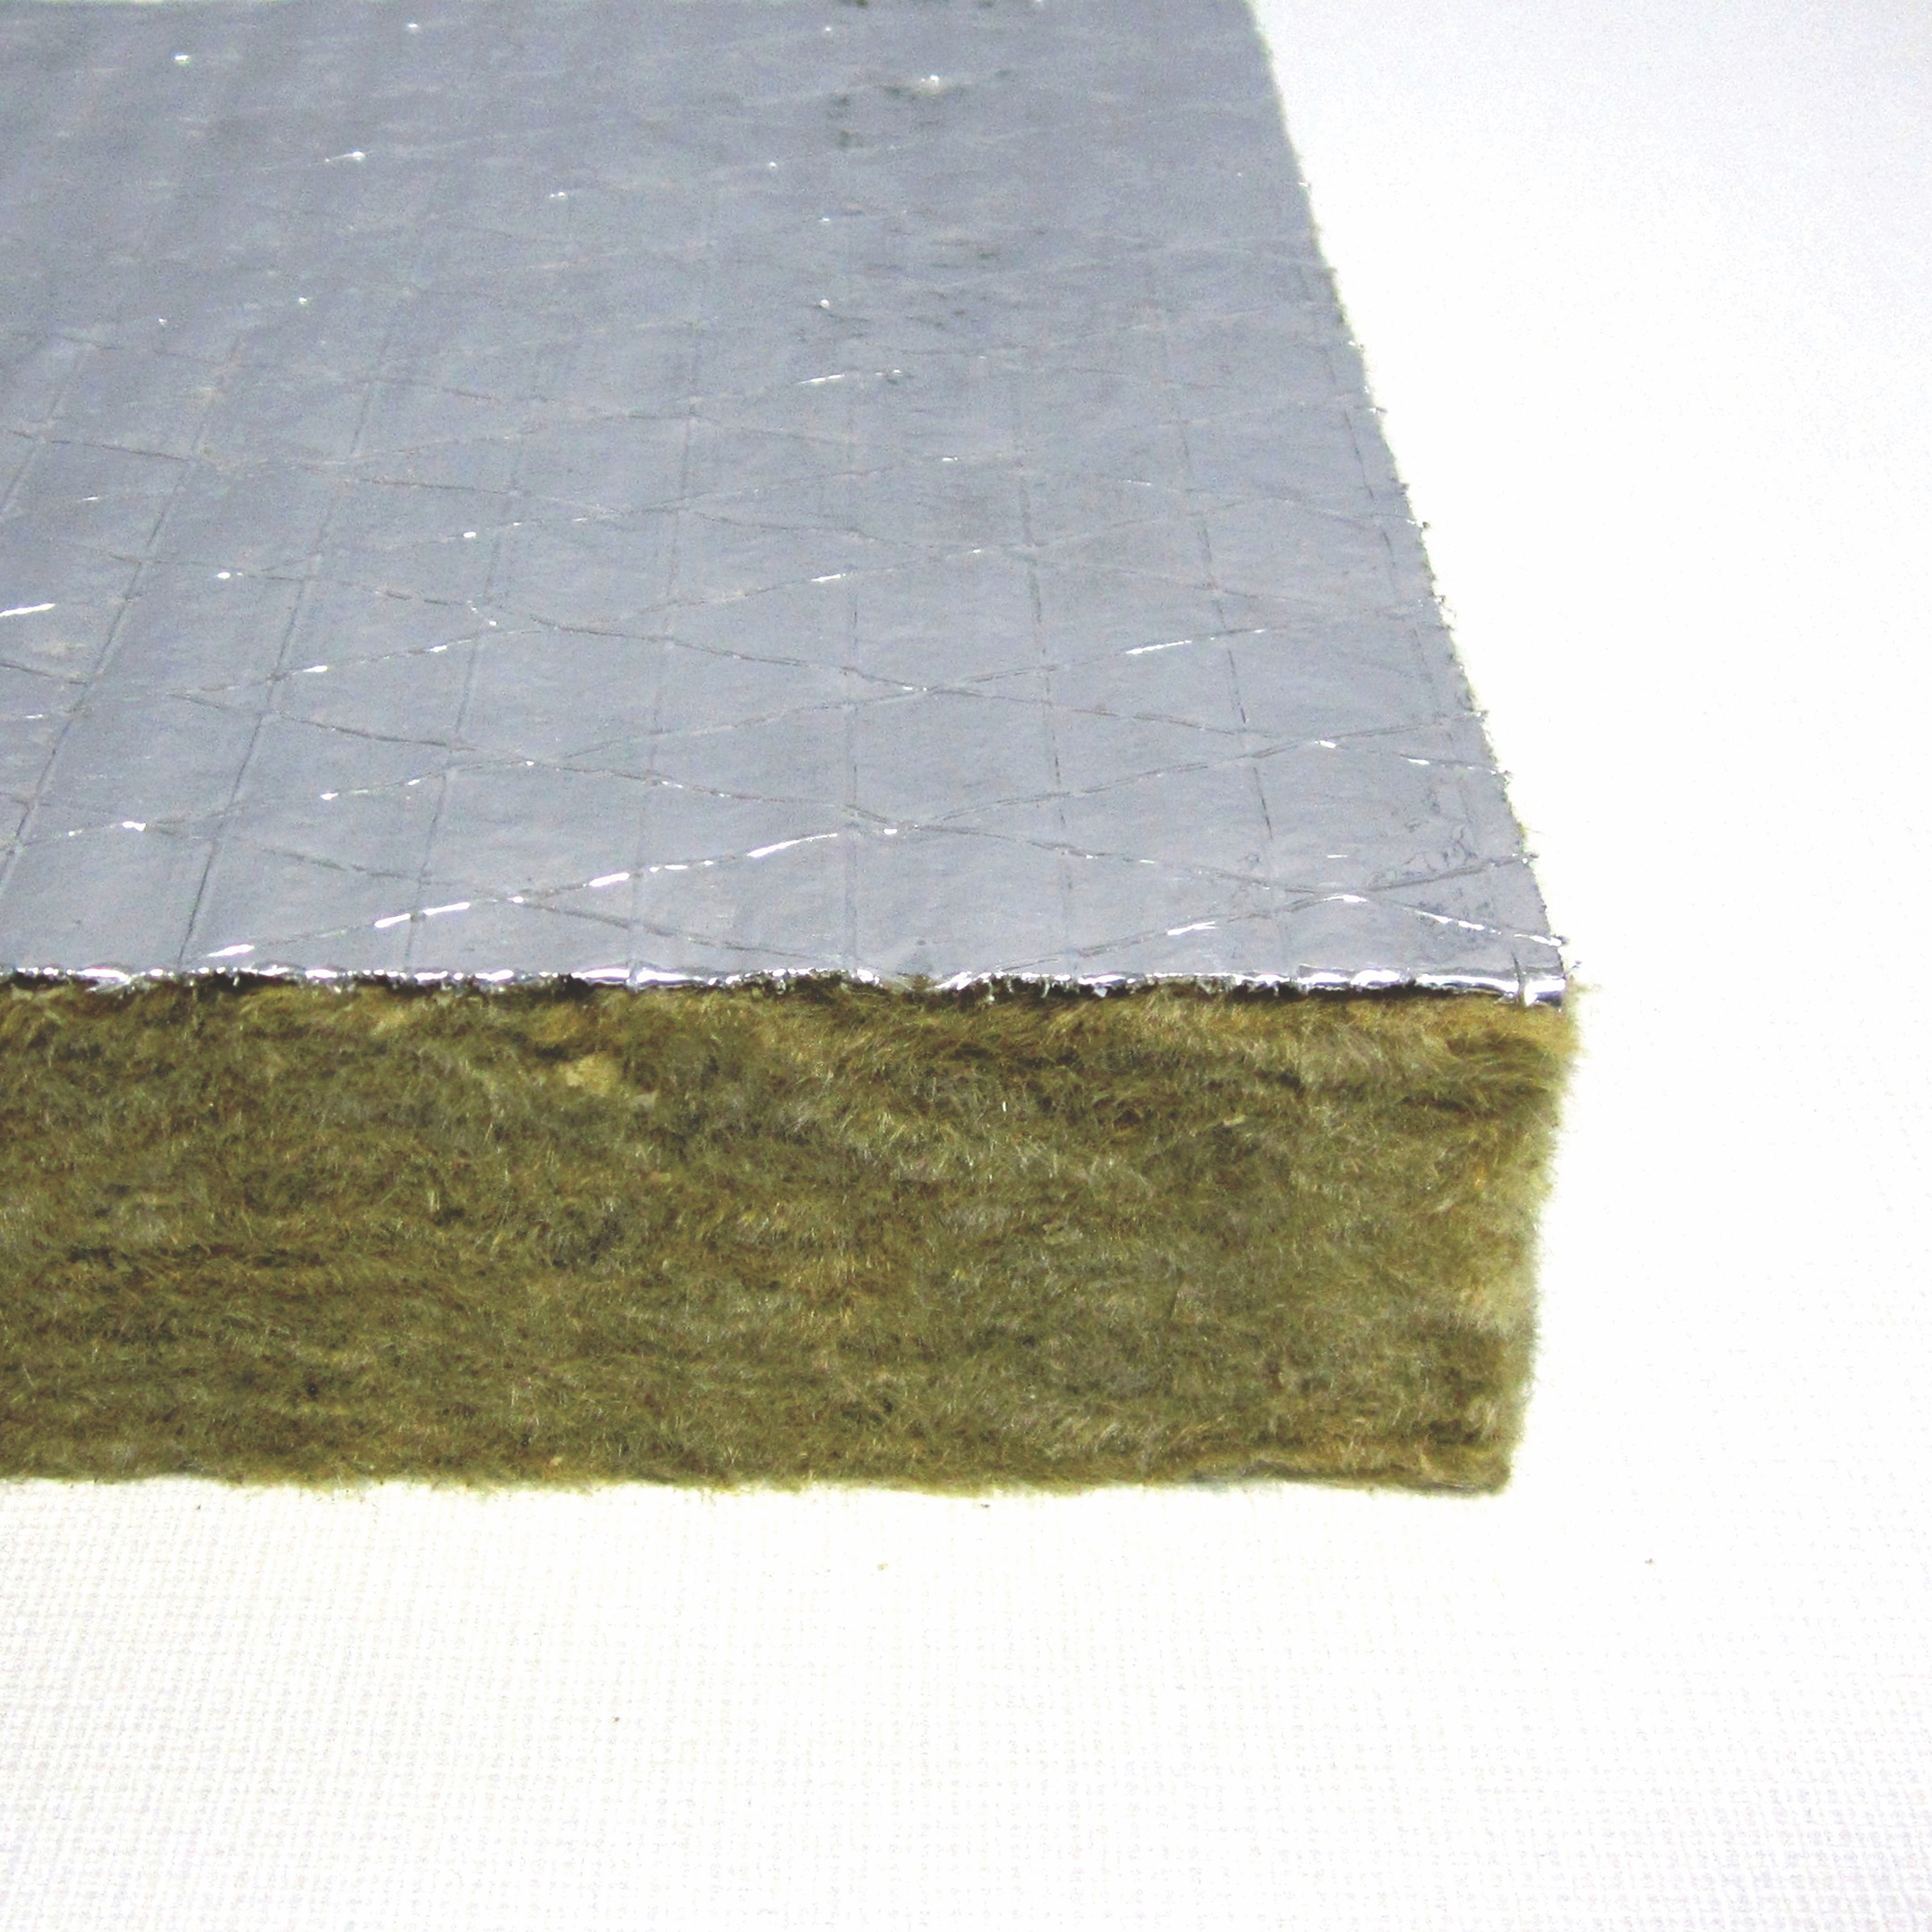 Rockfon's plenum barrier